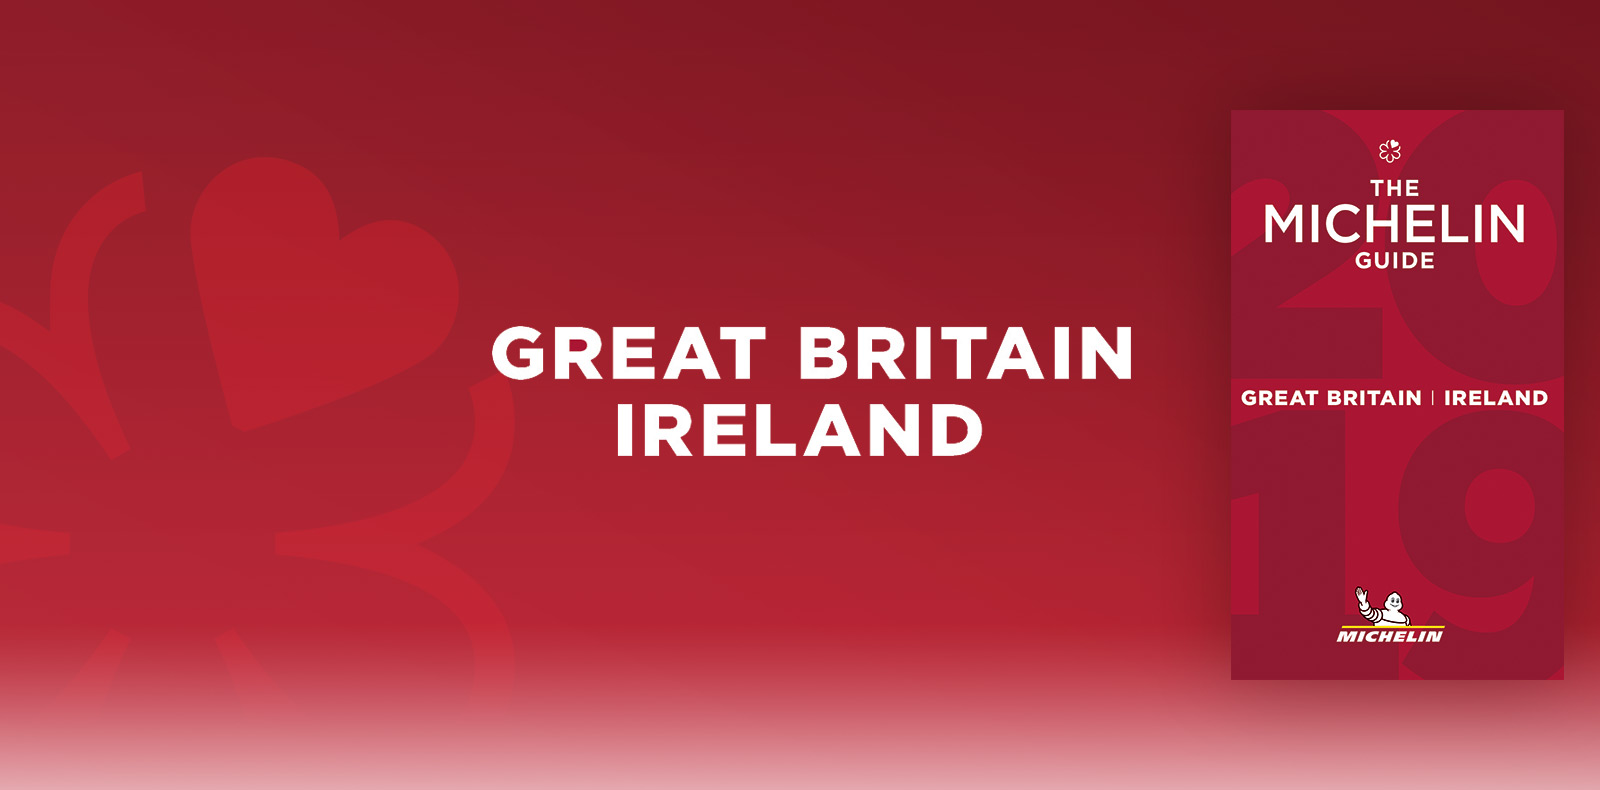 Visual illustrating The MICHELIN Guide of Ireland and Great Britain